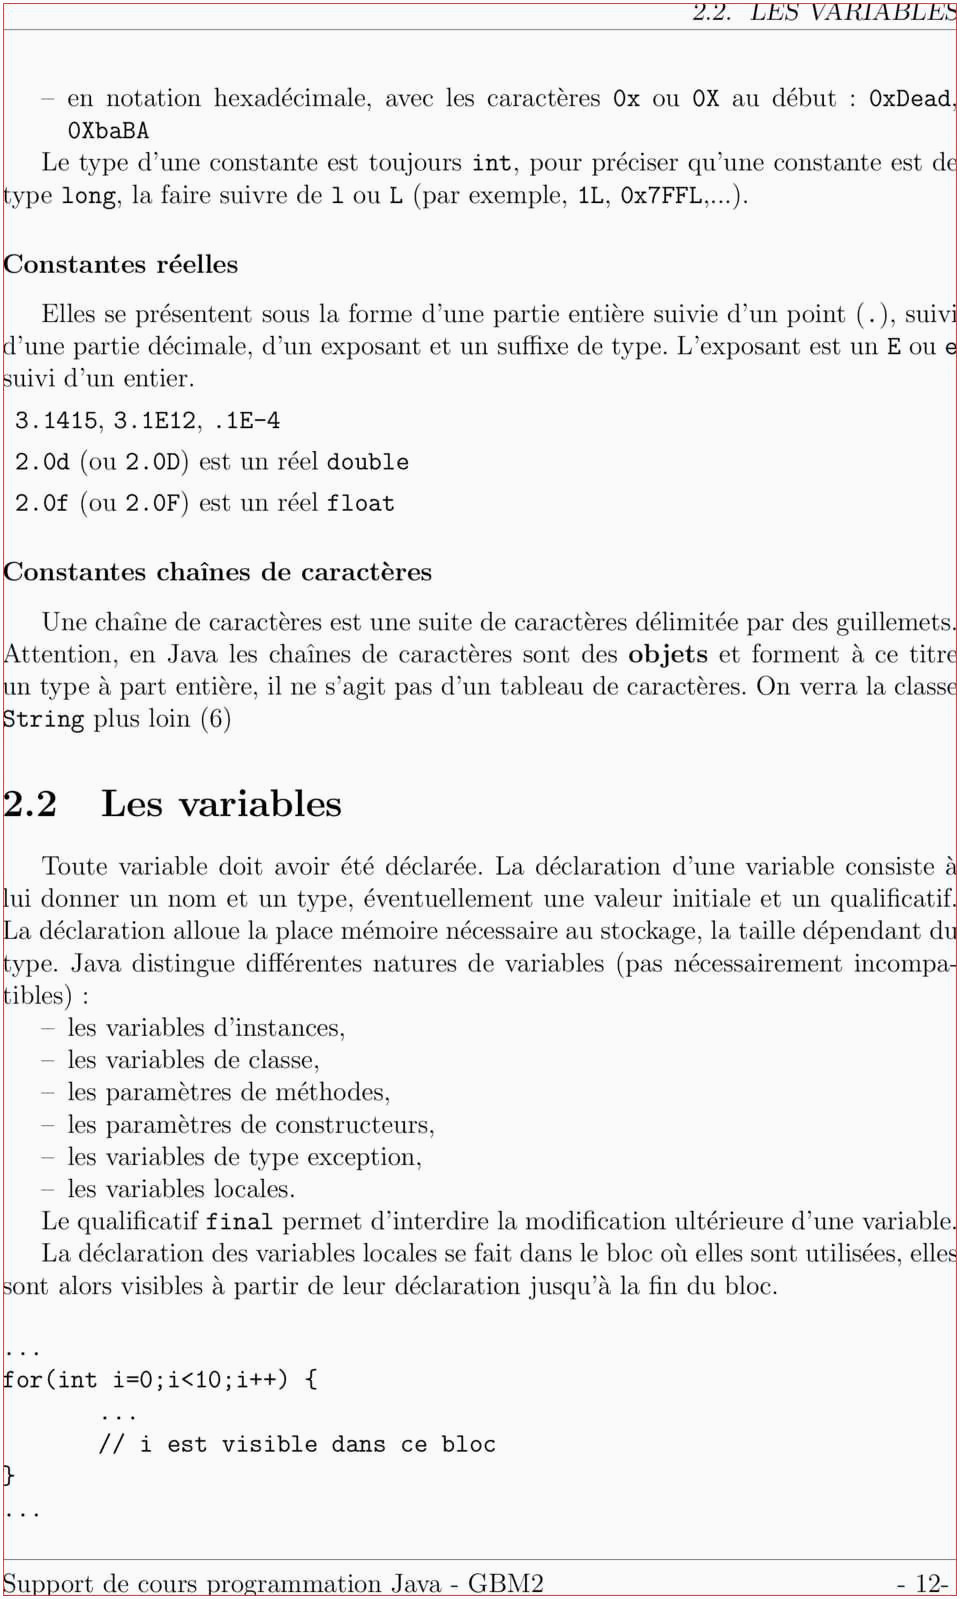 Lettre De Motivation formateur 38 Exemple Lettre De Motivation Ehpad